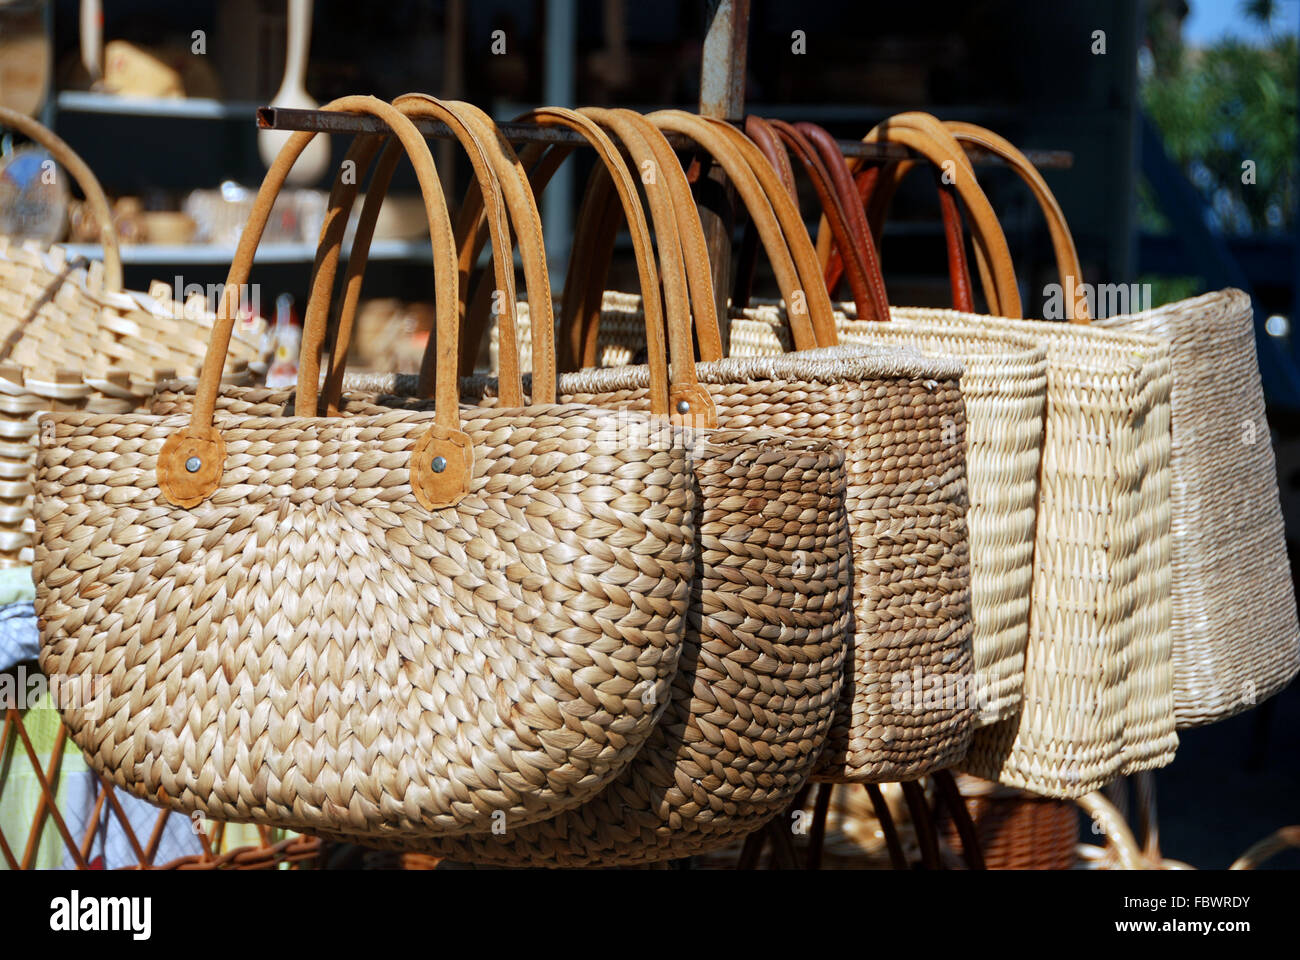 Two handled wicker bags - Stock Image